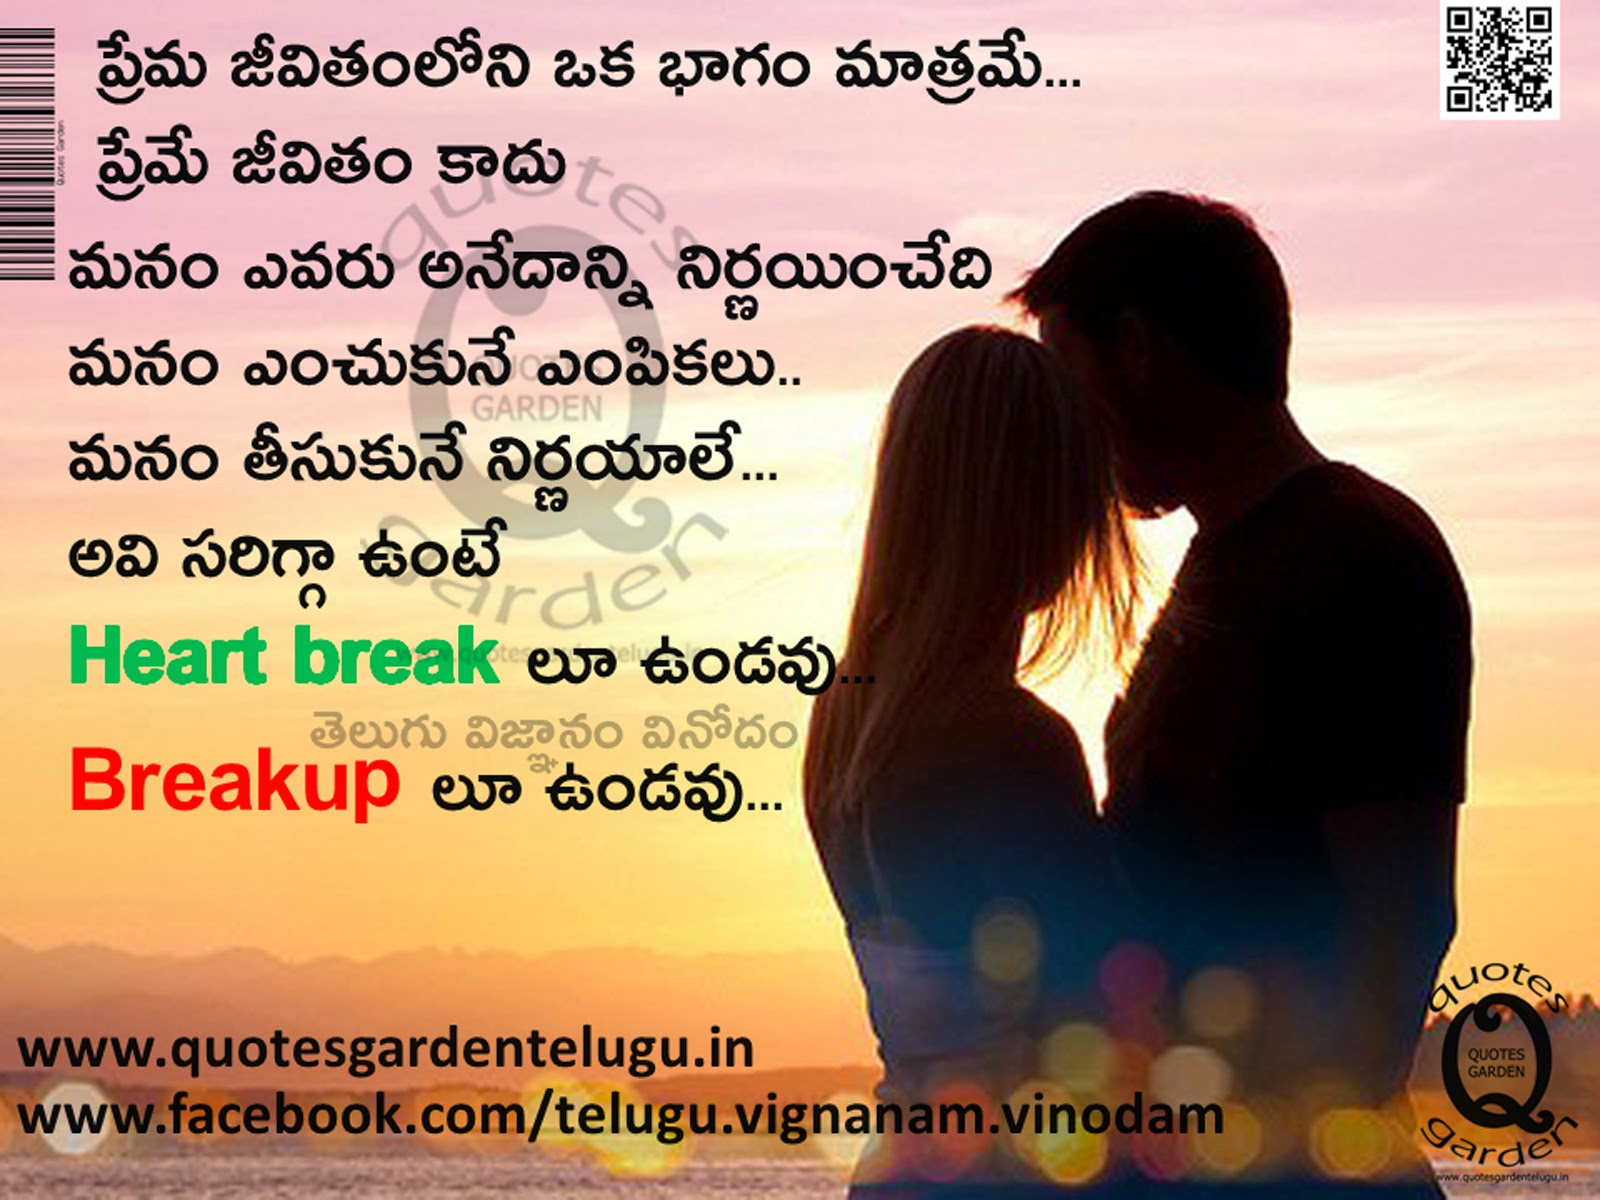 Telugu love and inspirational quotes